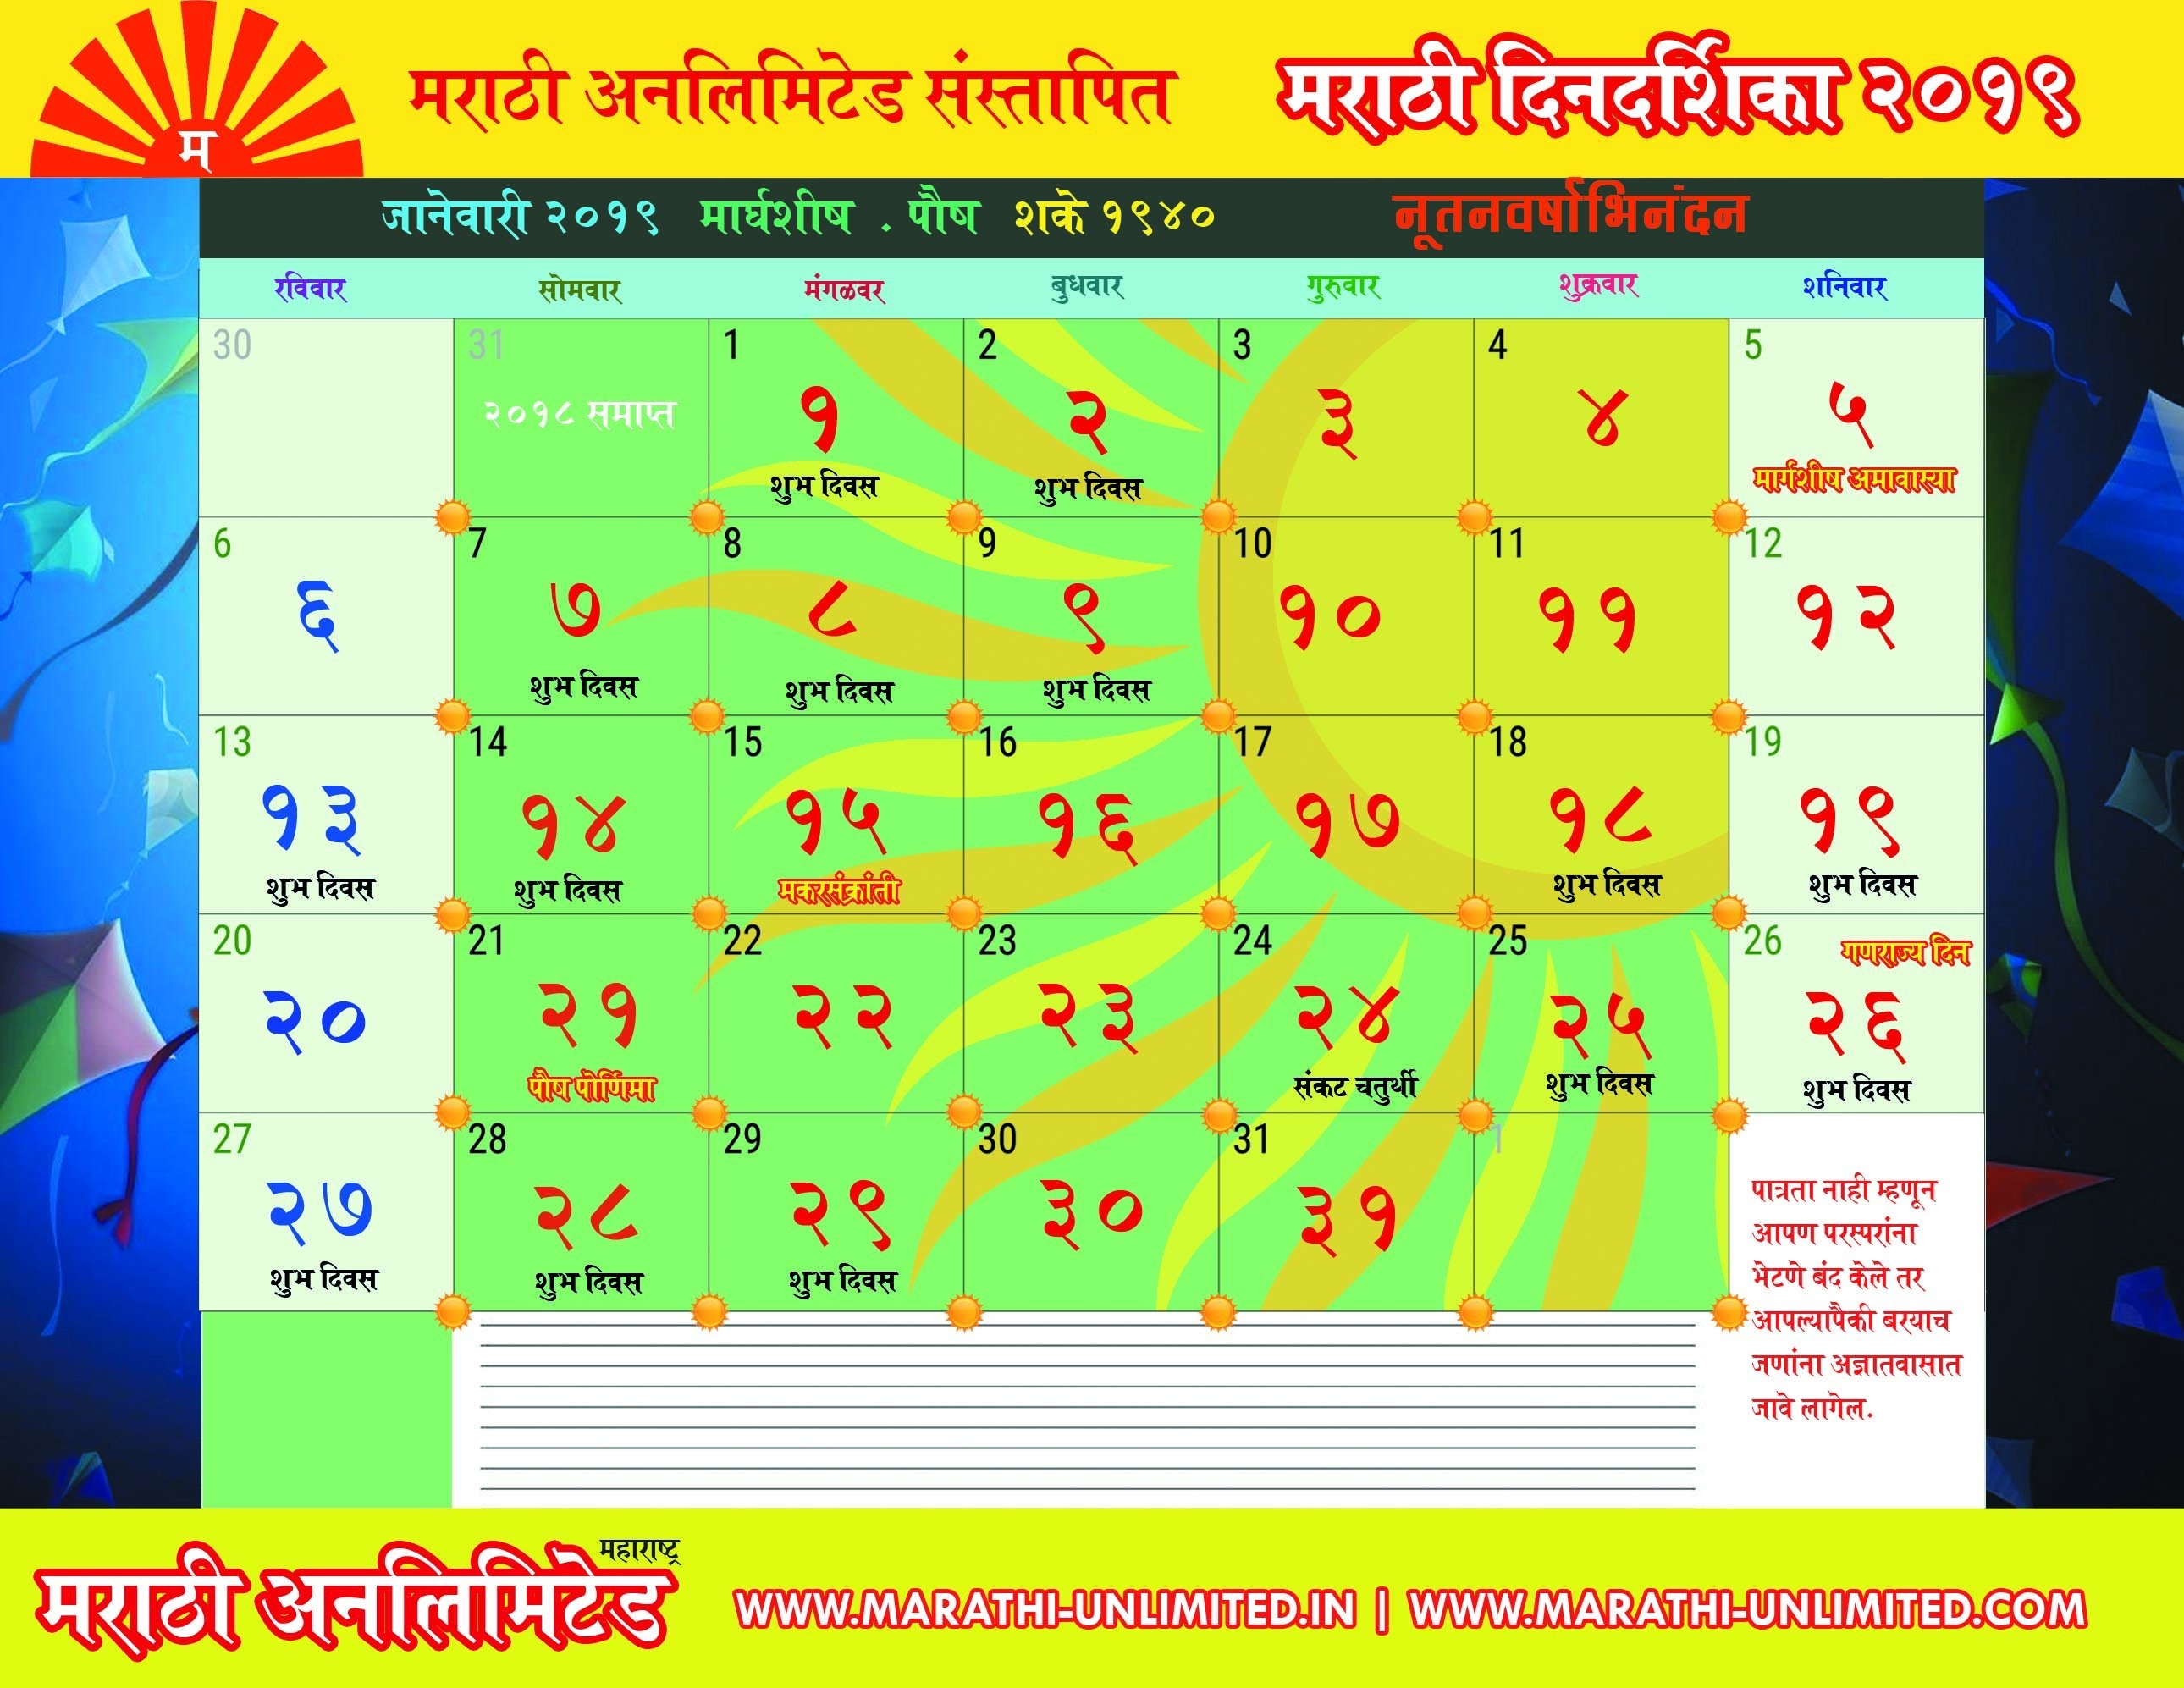 Marathi Calendar 2019 Pdf Version [Free Download] Marathi Almanac Calendar Of 2019 In Marathi